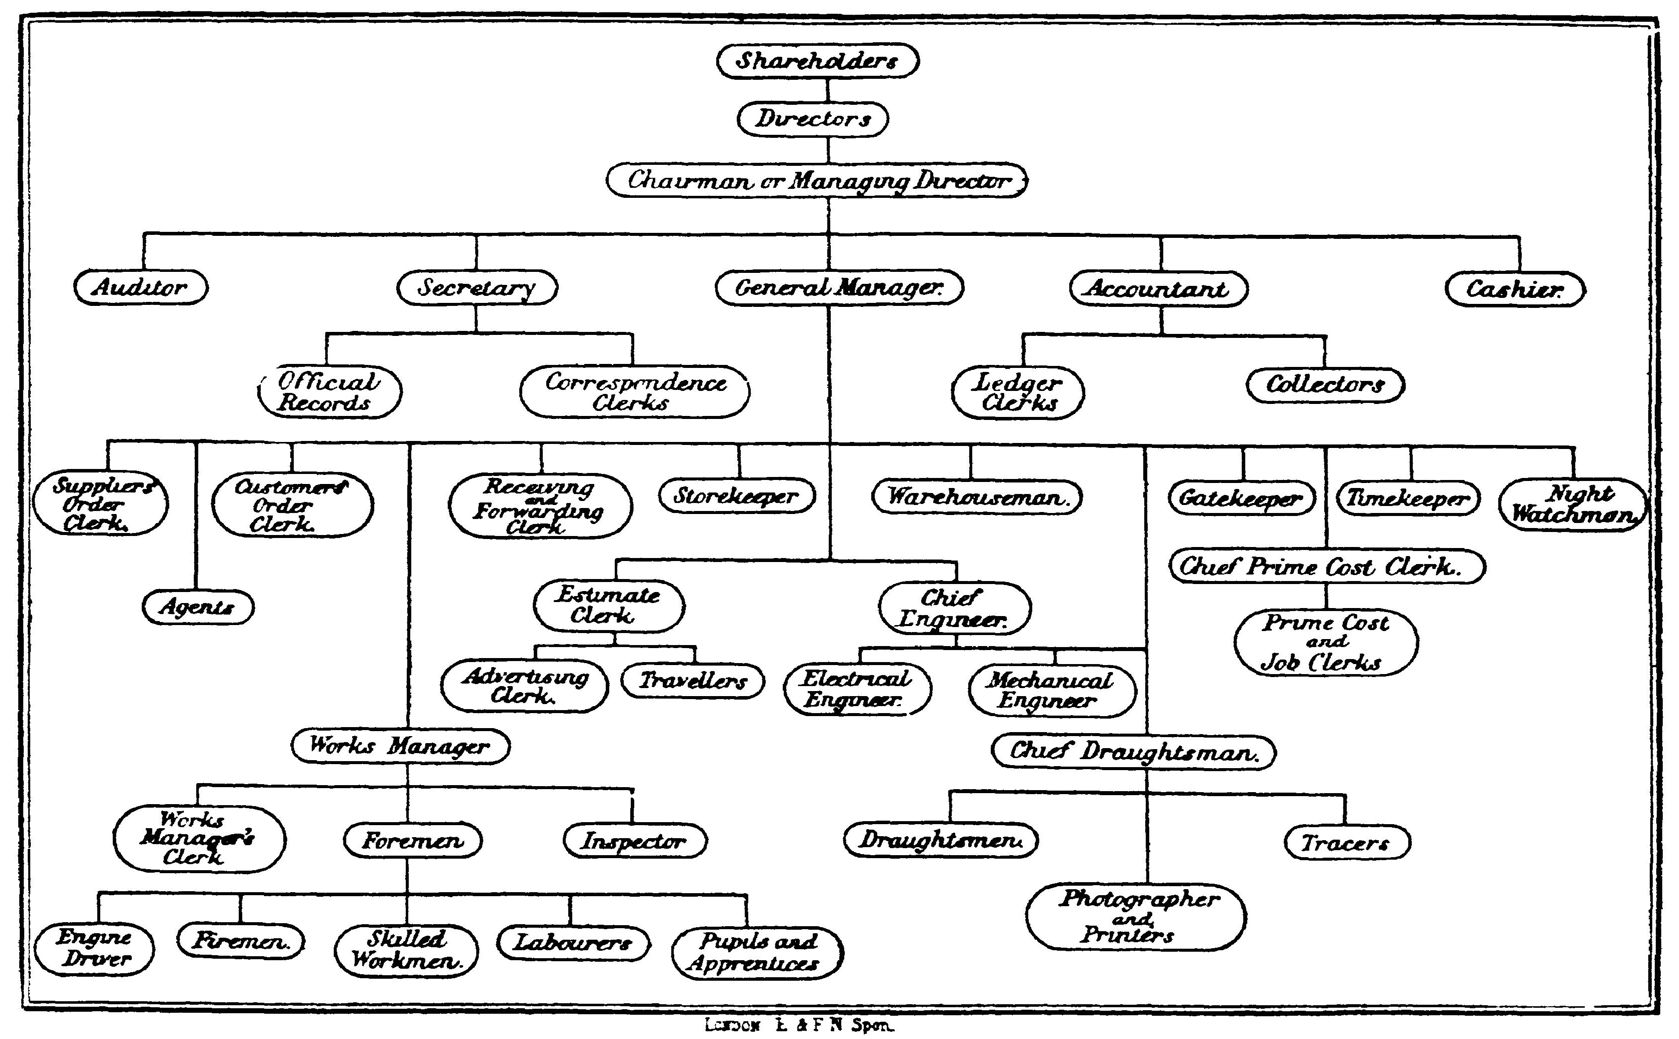 Flow Chart Organizational Structure: Staff Organisation Diagram 1896.jpg - Wikimedia Commons,Chart